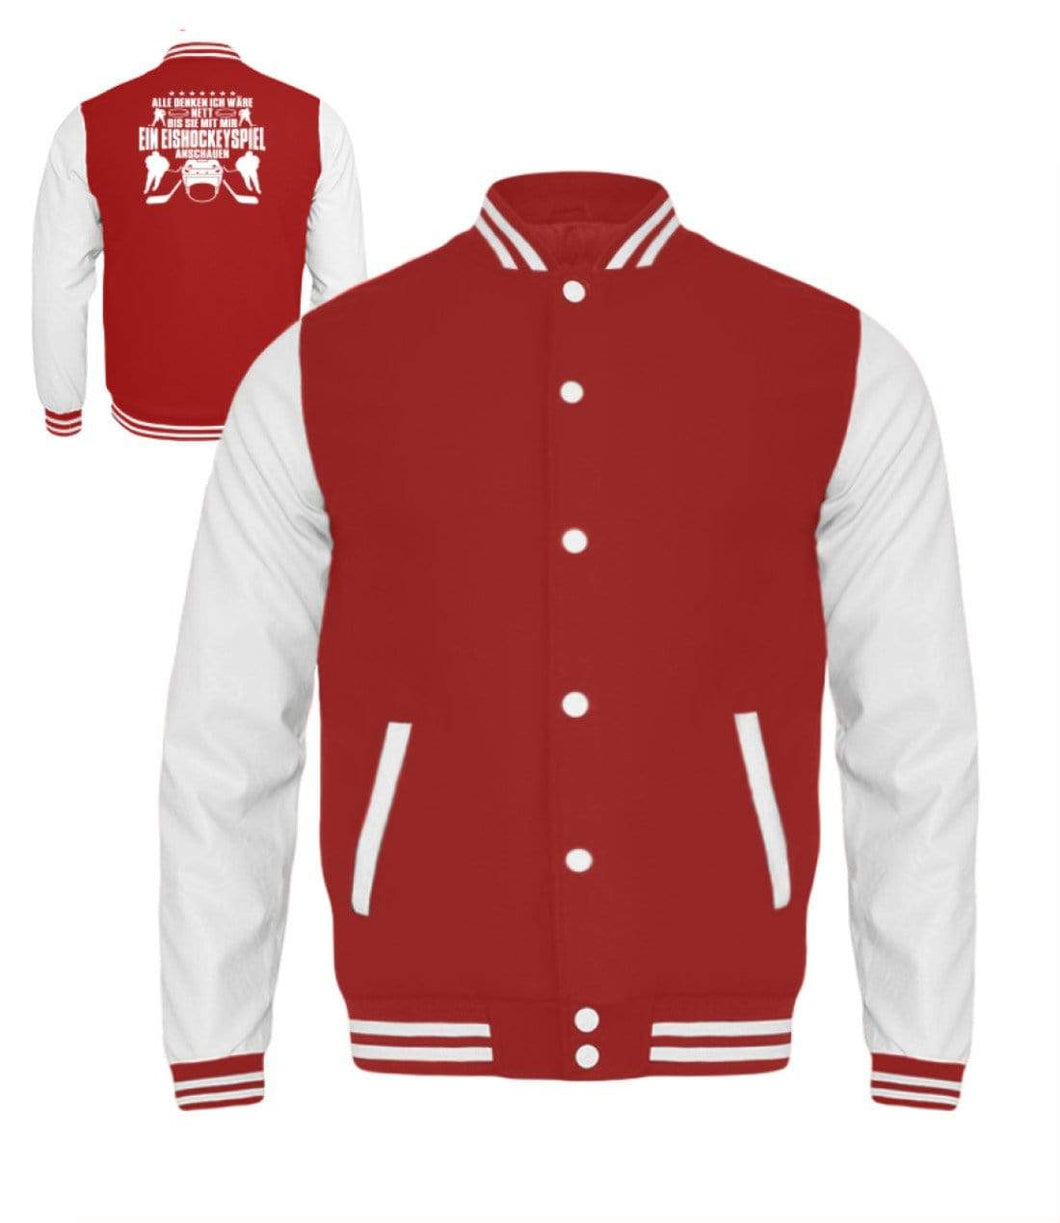 Kinder Collegejacke Fire Red-White / 3/4 (98/104) Eishockey: Nett, bis wir Eishockey schauen  - Kinder College Sweatjacke (4378892501044)